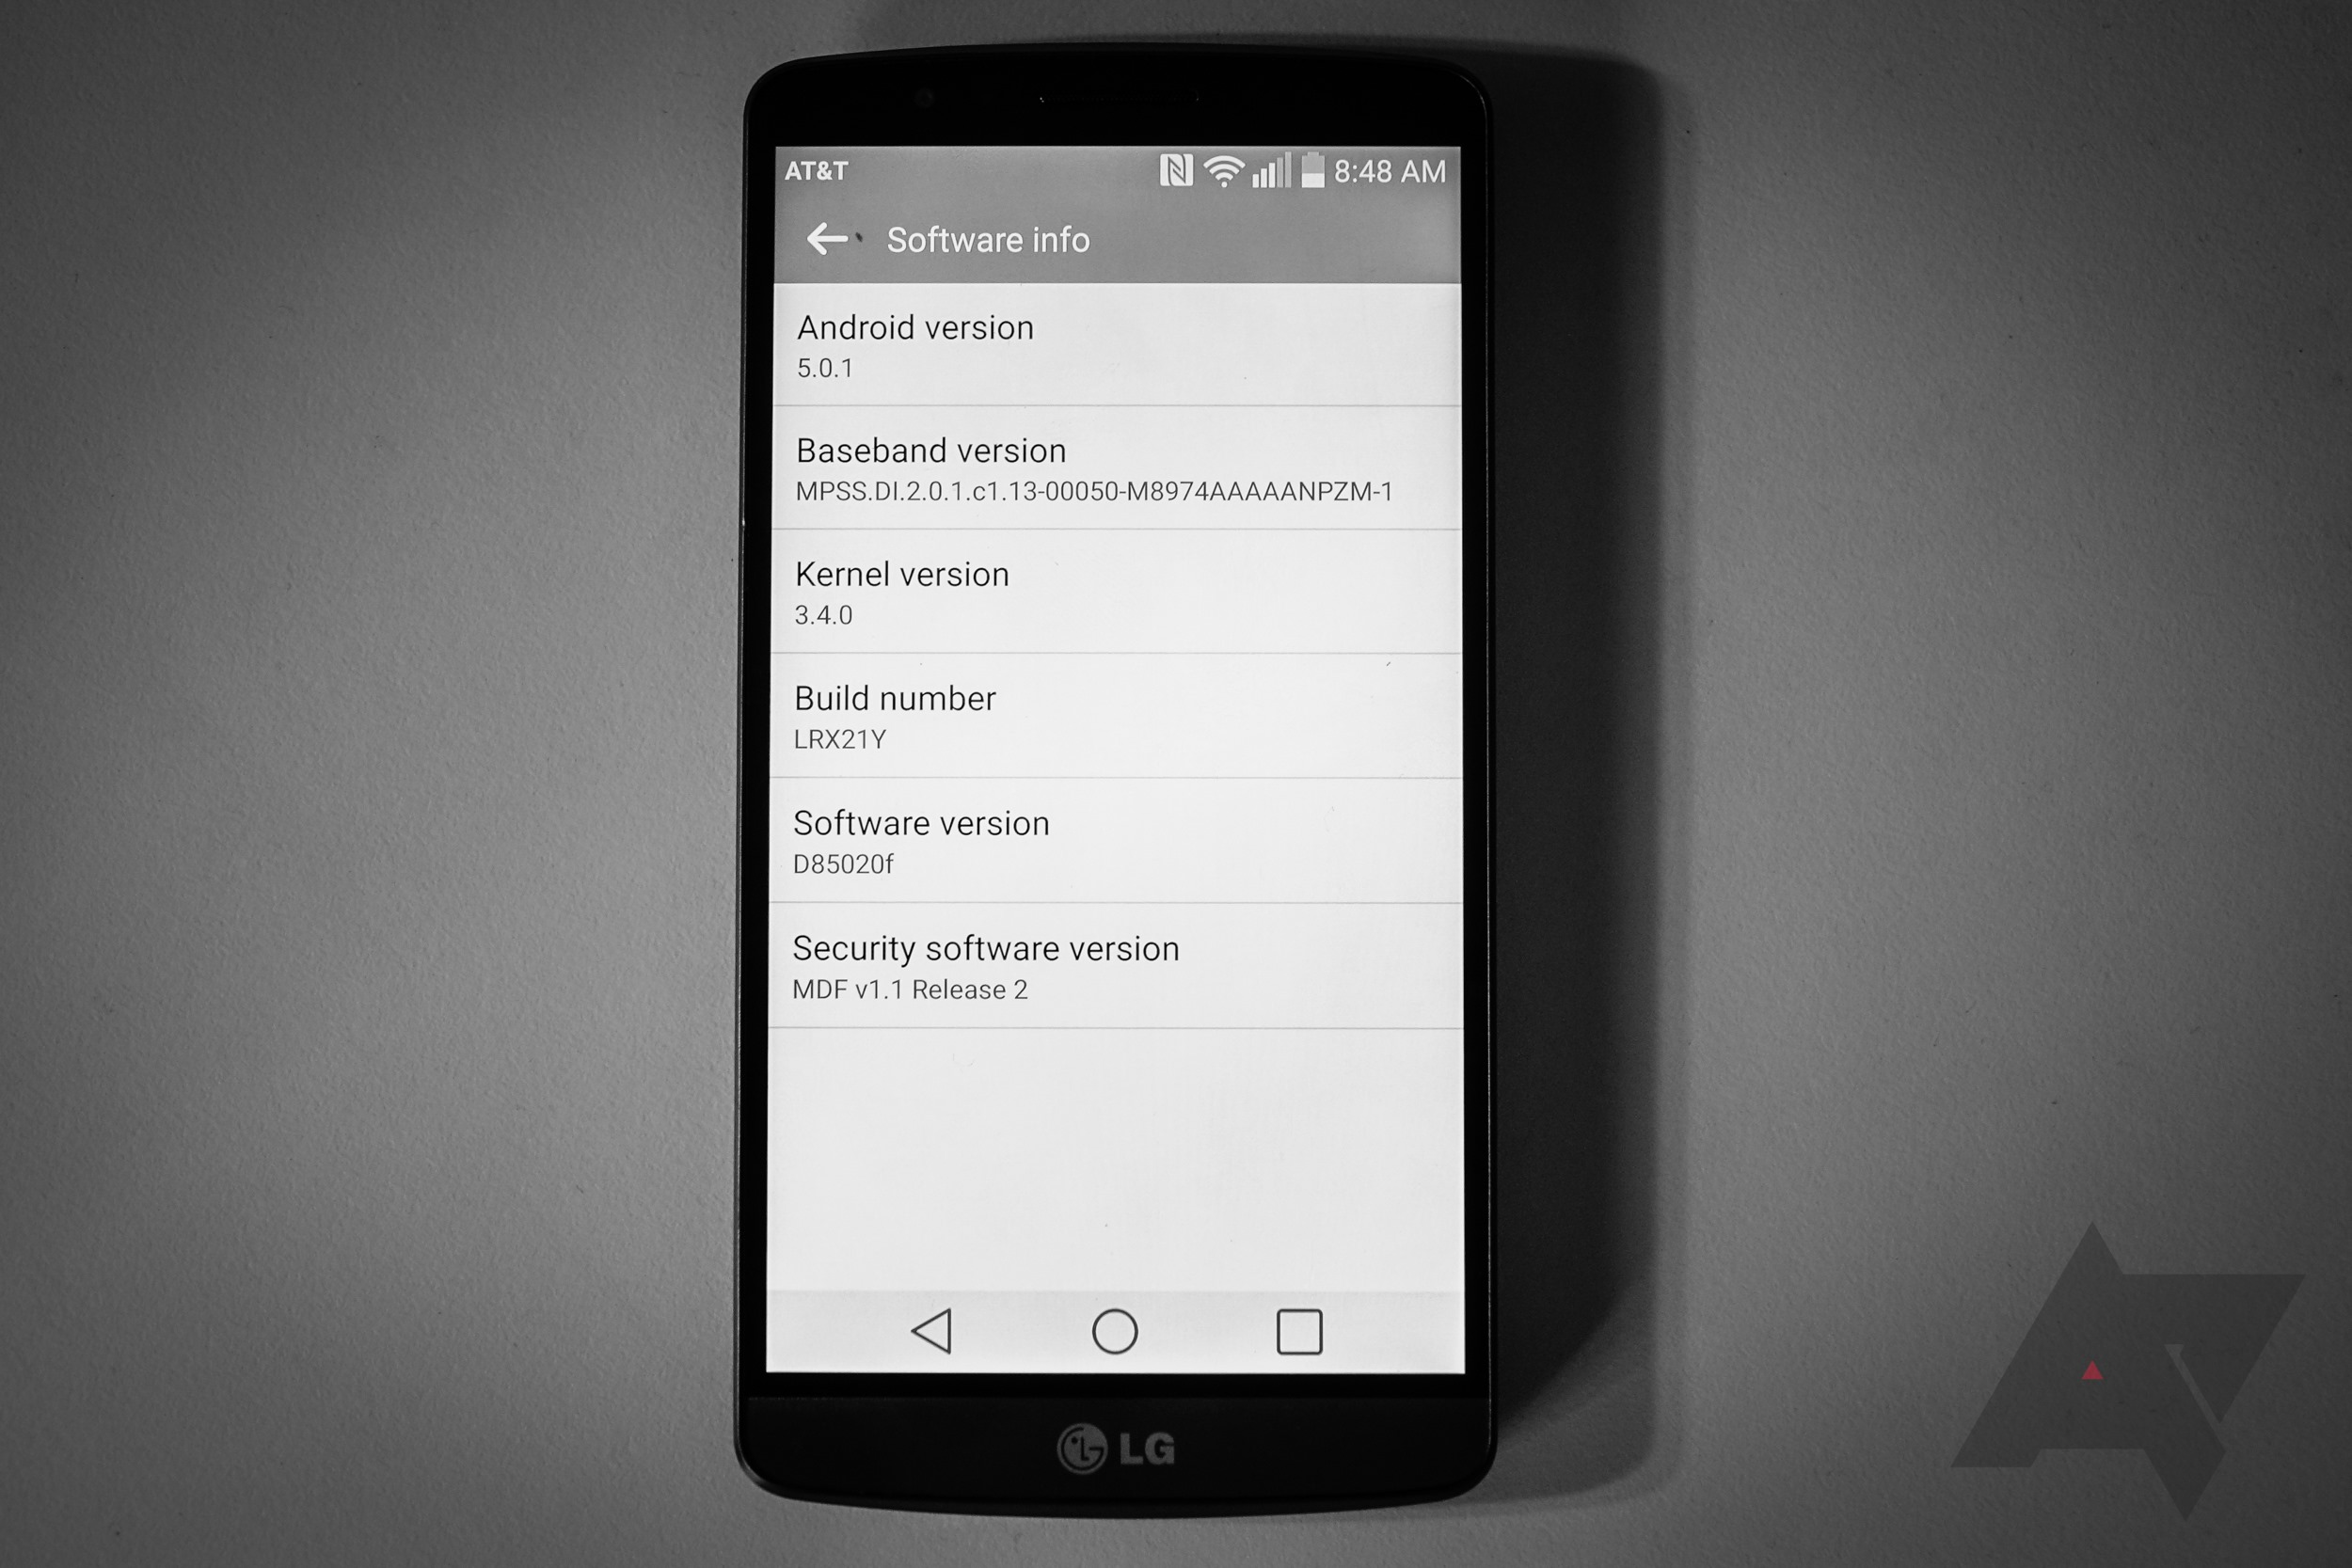 Android 5 0 1 lollipop and 5 0 2 update for nexus devices android - Android Police